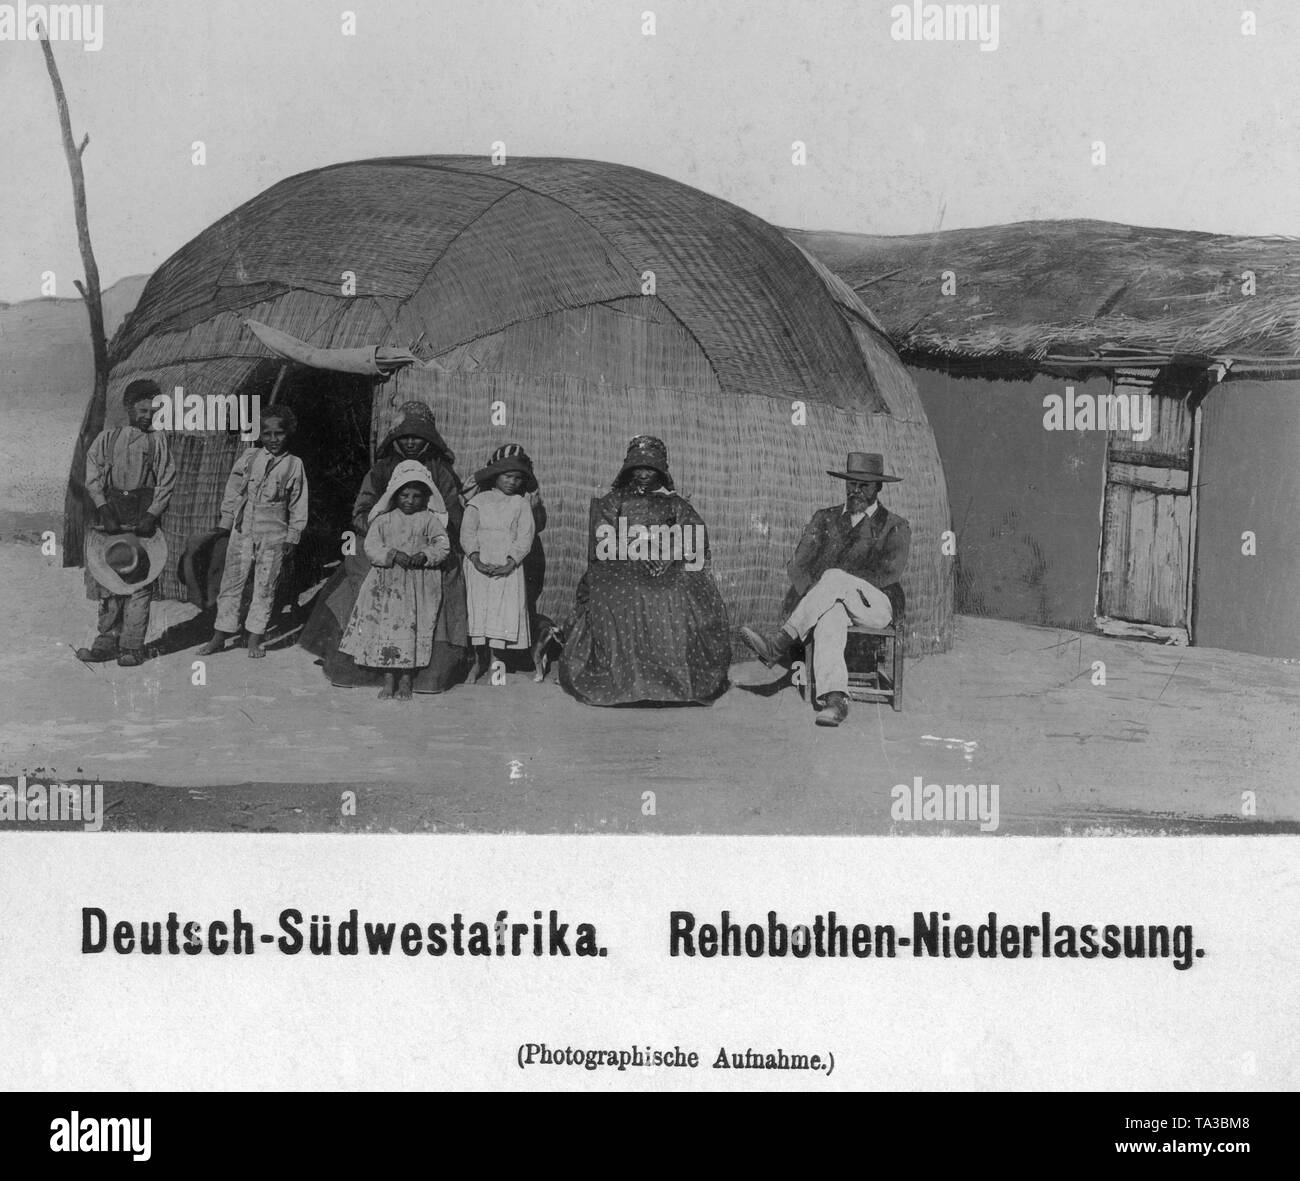 Group of Rehobothers in European clothes in front of a pondok in German Southwest Africa (undated shot). Stock Photo